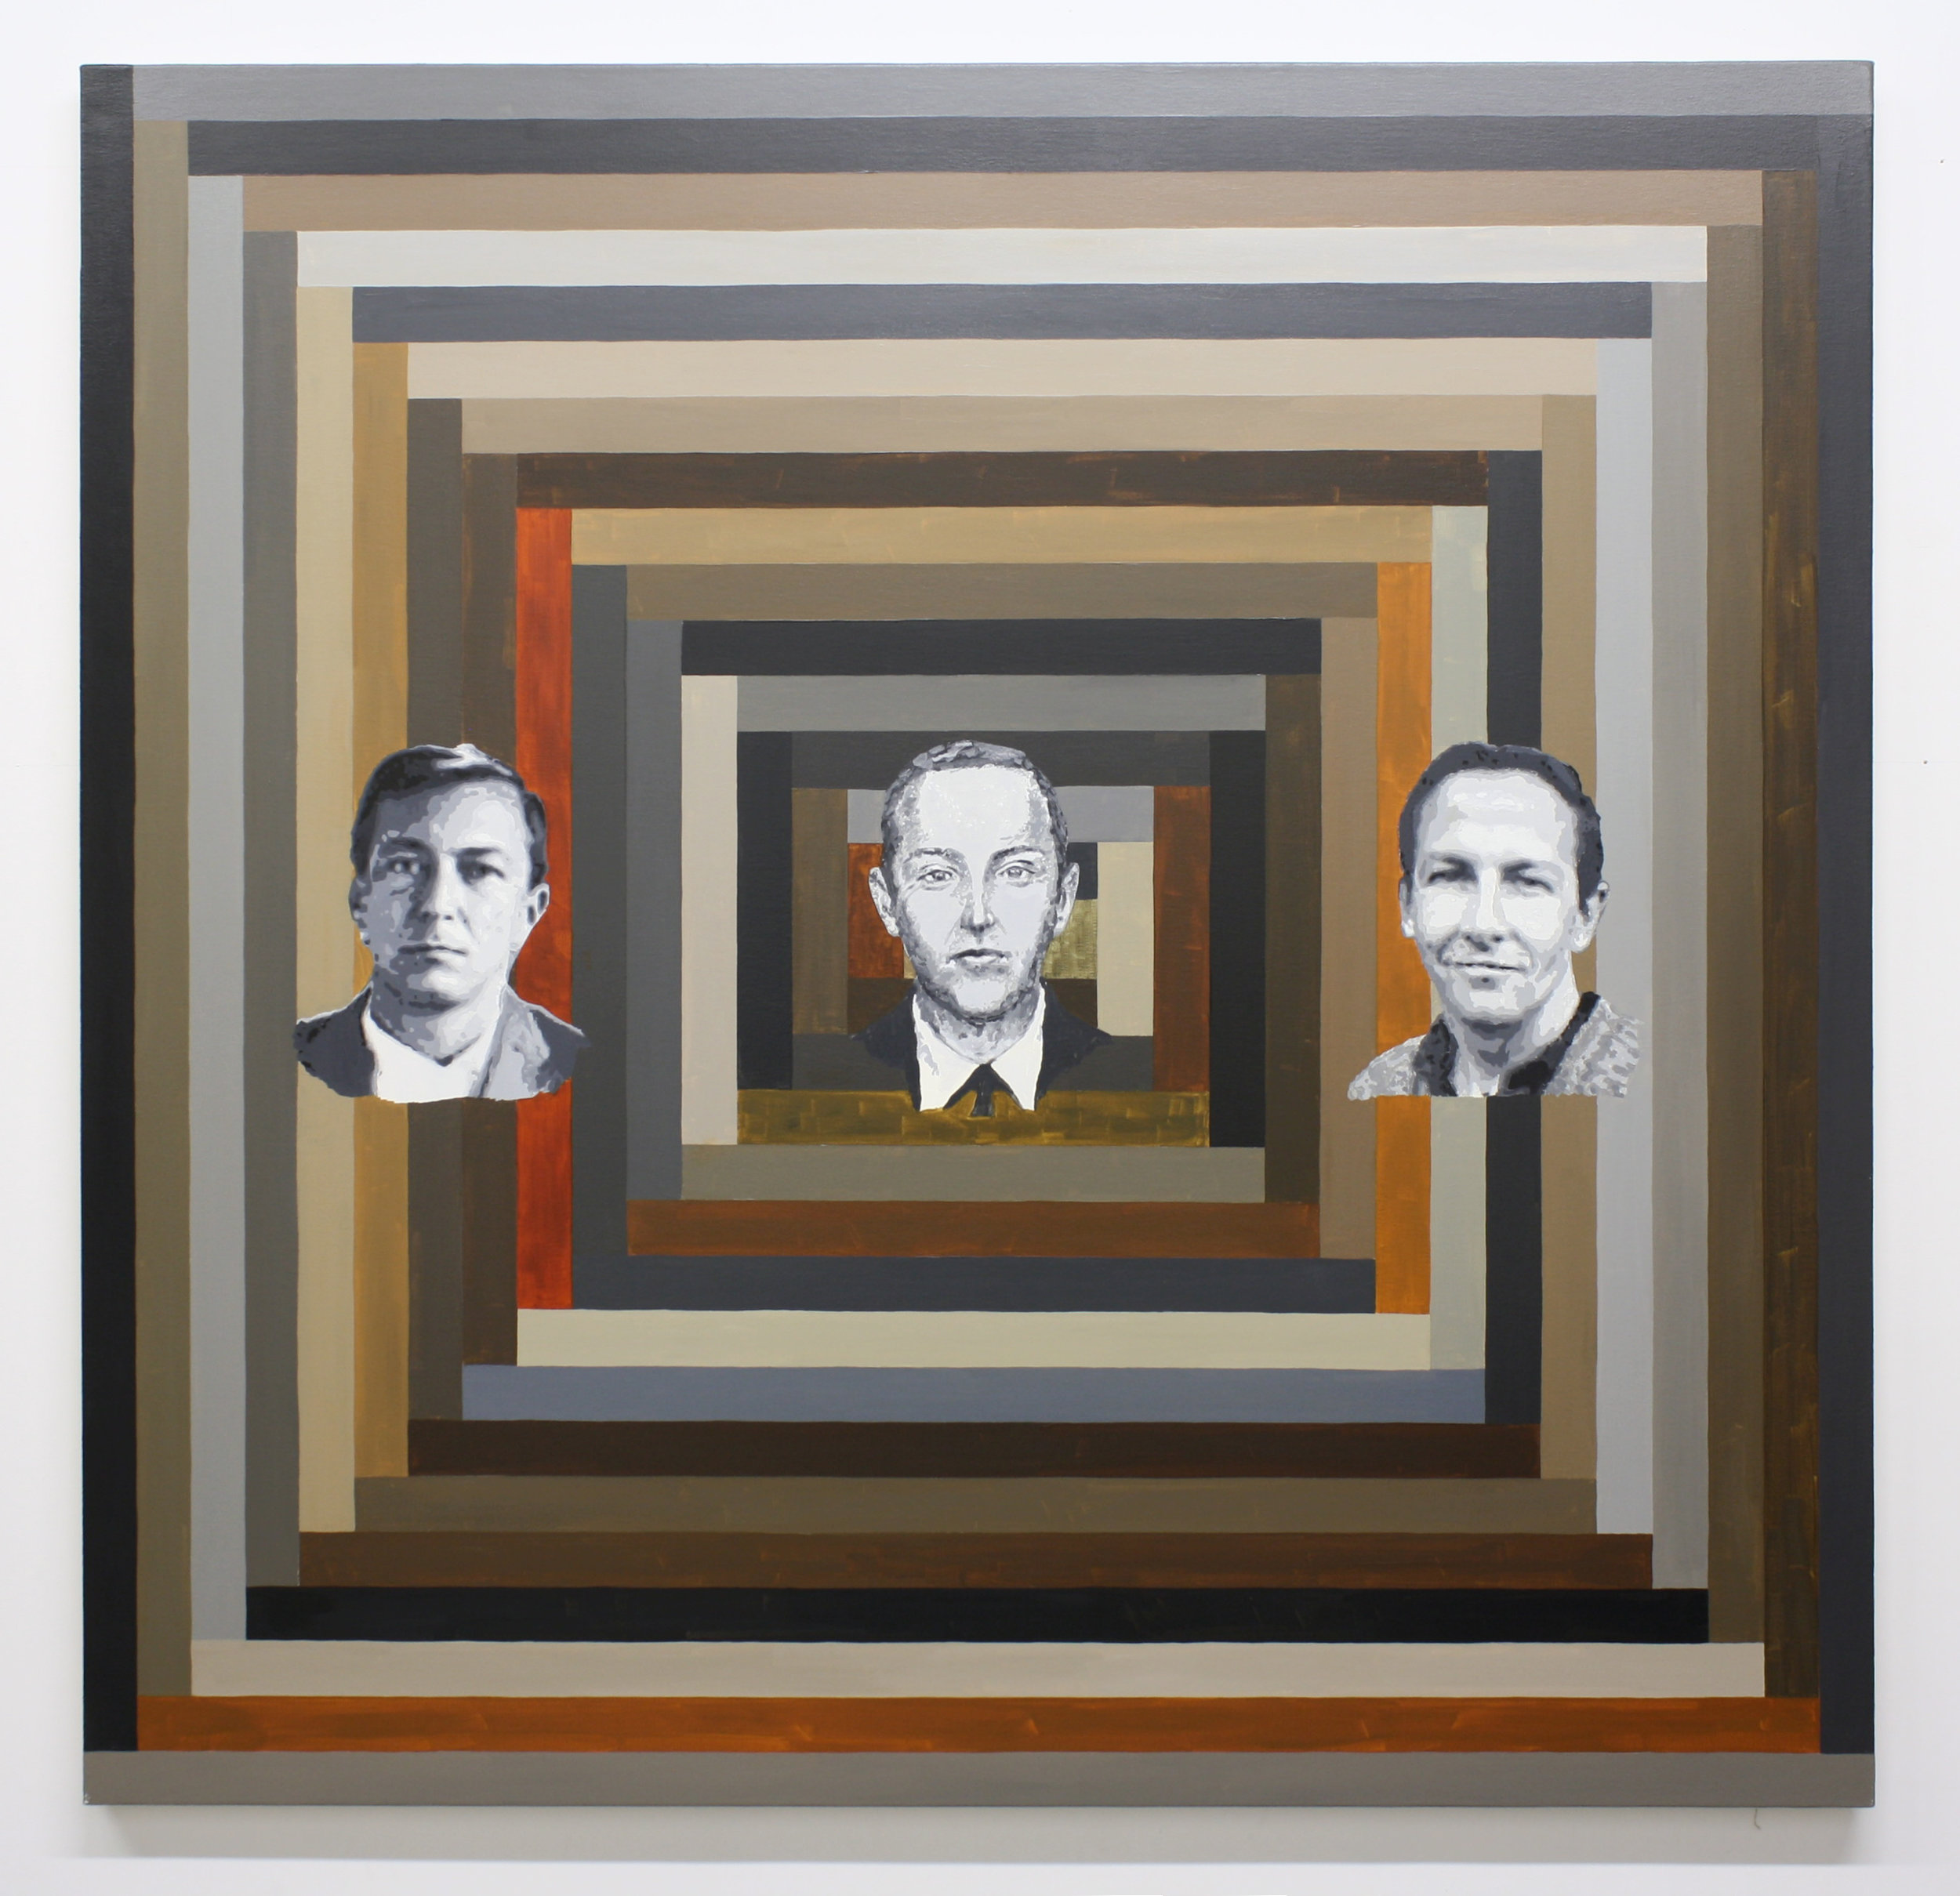 """3 Men"", 2014 , oil on canvas, 64 x 66 inches"